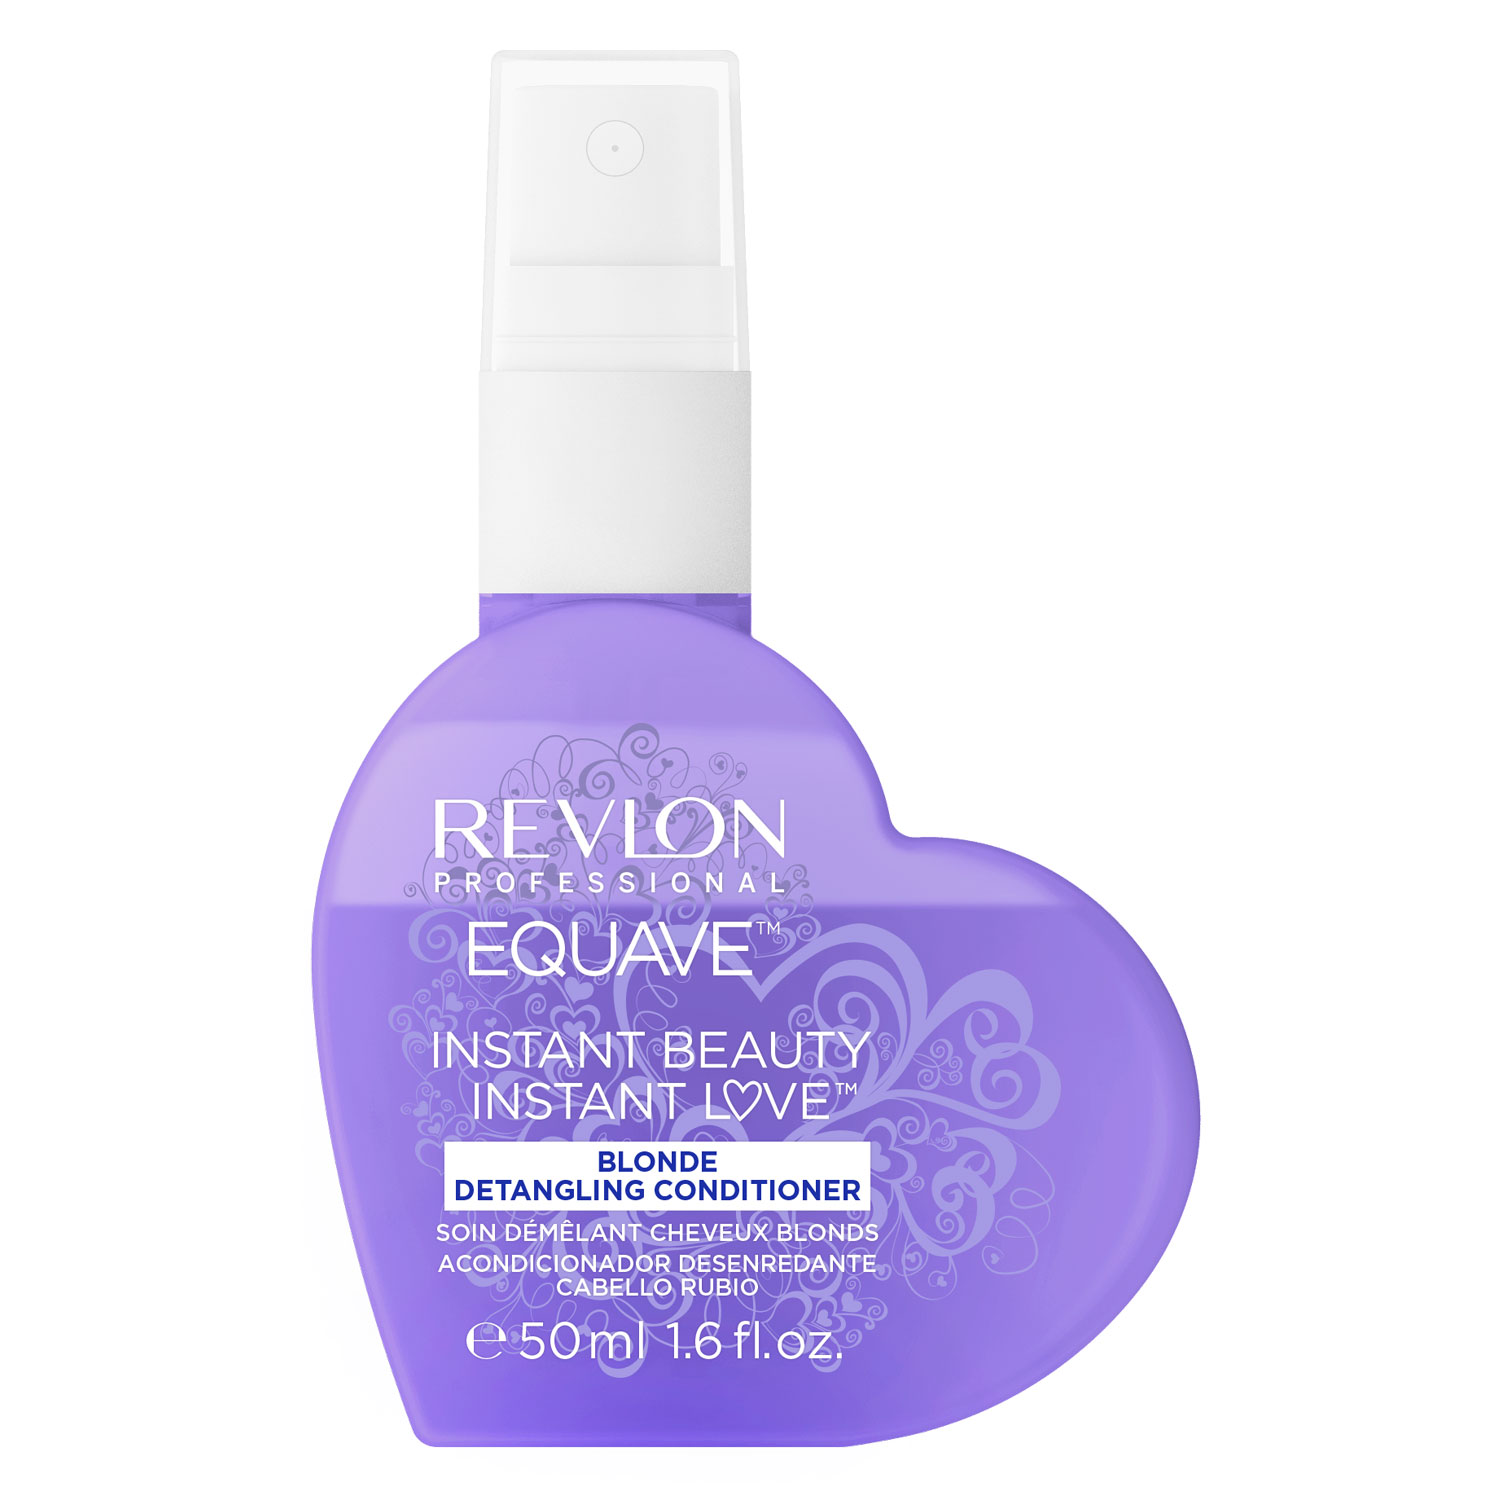 Equave - Blonde Detangling Heart Conditioner - 50ml